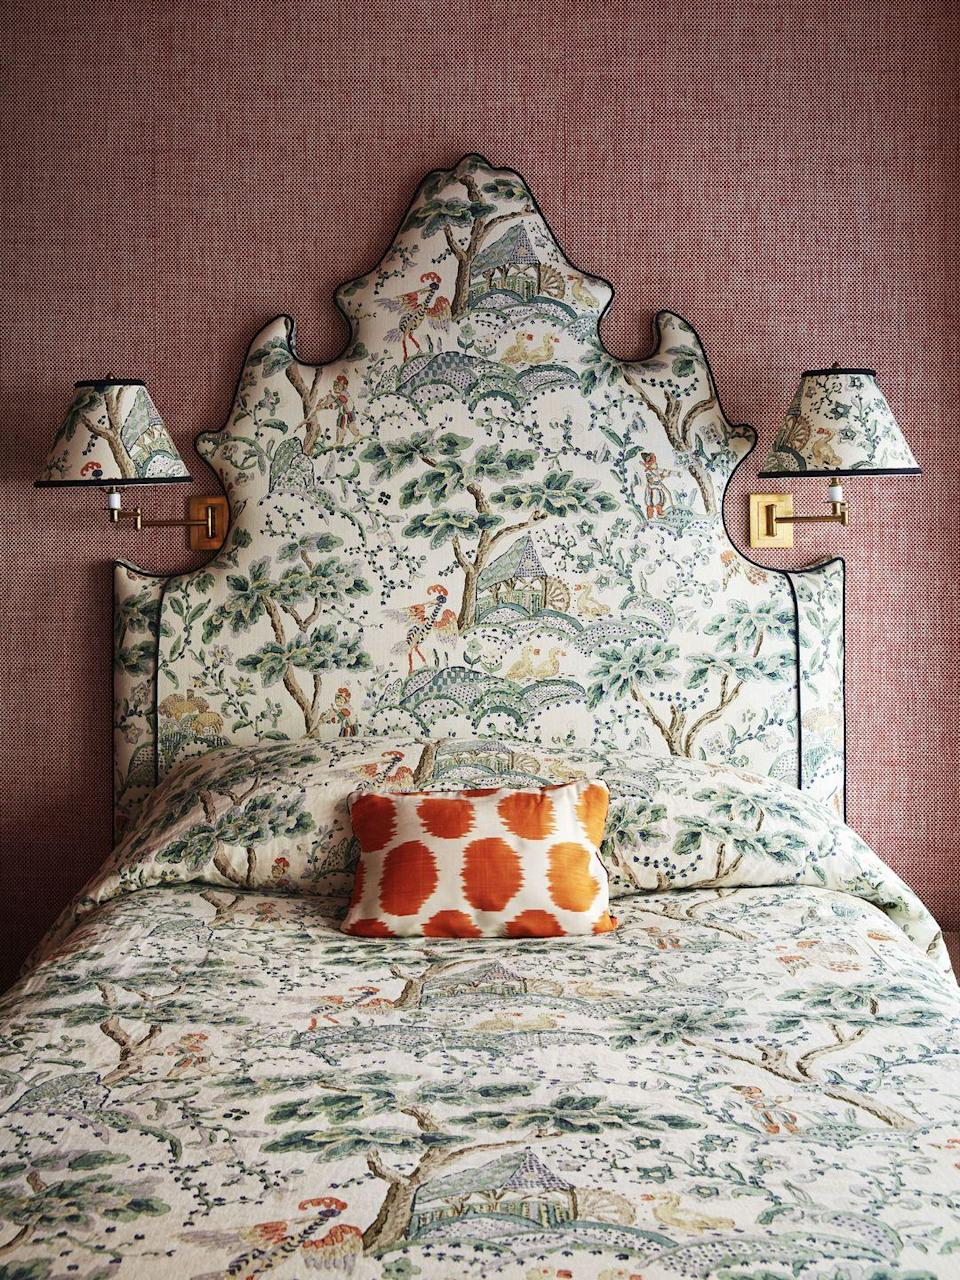 "<p>Heavy patterned fabric fans, this one's for you. This delightful guest bedroom in <a href=""https://www.veranda.com/decorating-ideas/house-tours/a34244505/chiqui-woolworth-nyc-apartment-tour/"" rel=""nofollow noopener"" target=""_blank"" data-ylk=""slk:a Manhattan apartment designed by Chiqui Woolworth"" class=""link rapid-noclick-resp"">a Manhattan apartment designed by Chiqui Woolworth</a> utilizes an archival English fabric from <a href=""https://www.scalamandre.com/"" rel=""nofollow noopener"" target=""_blank"" data-ylk=""slk:Scalamandré"" class=""link rapid-noclick-resp"">Scalamandré</a> to adorn the bed's uniquely shaped headboard, bed, and the adjacent sconces for a bold look that doesn't feel loud. </p>"